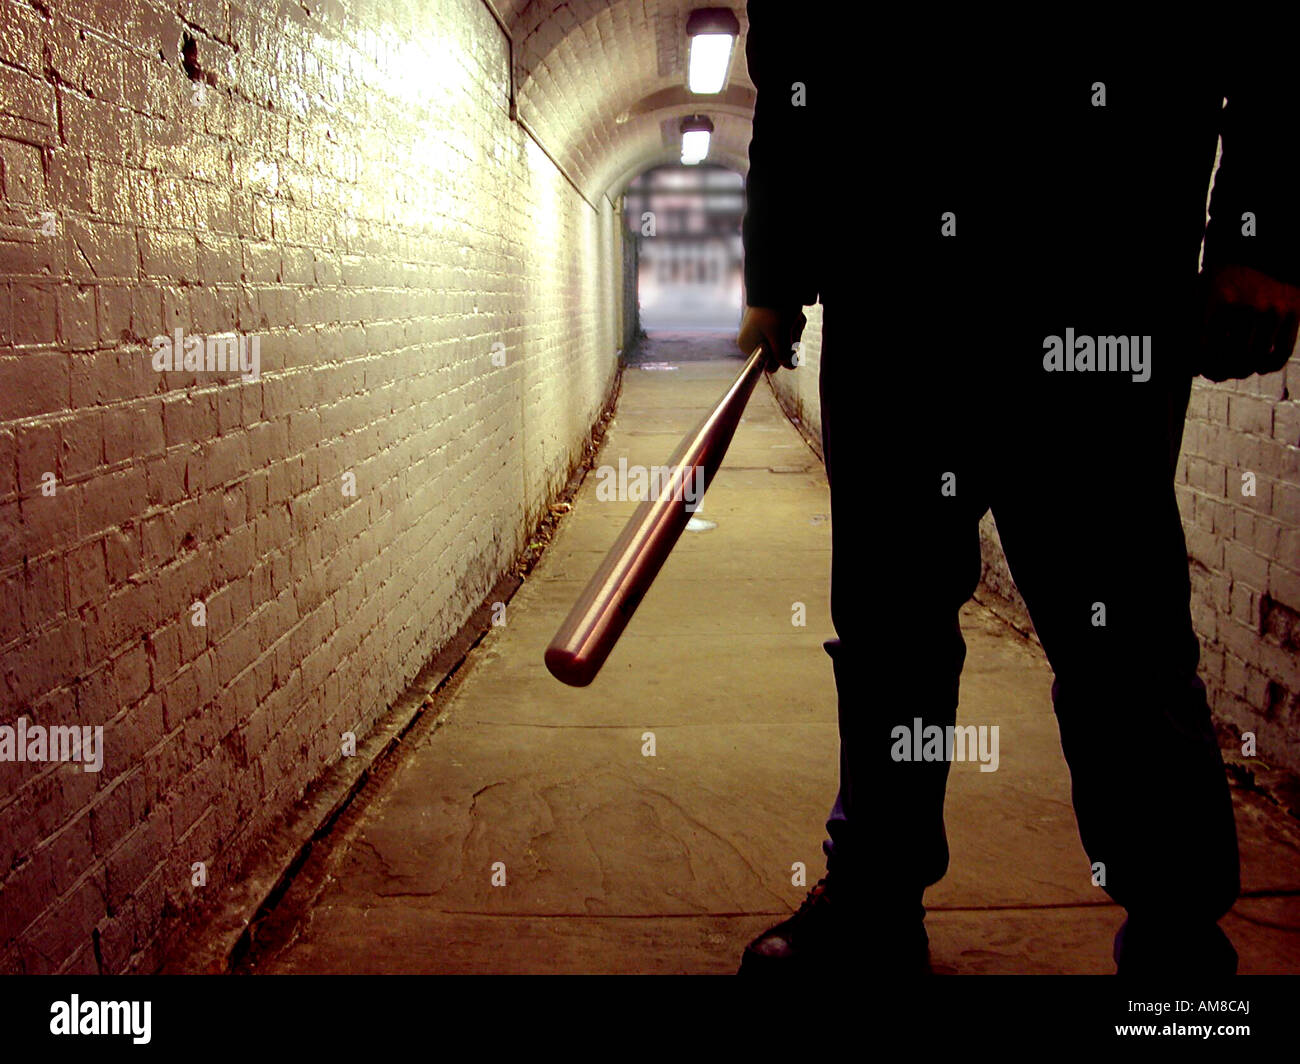 Unidentified thug with a baseball bat in a tunnel - Stock Image